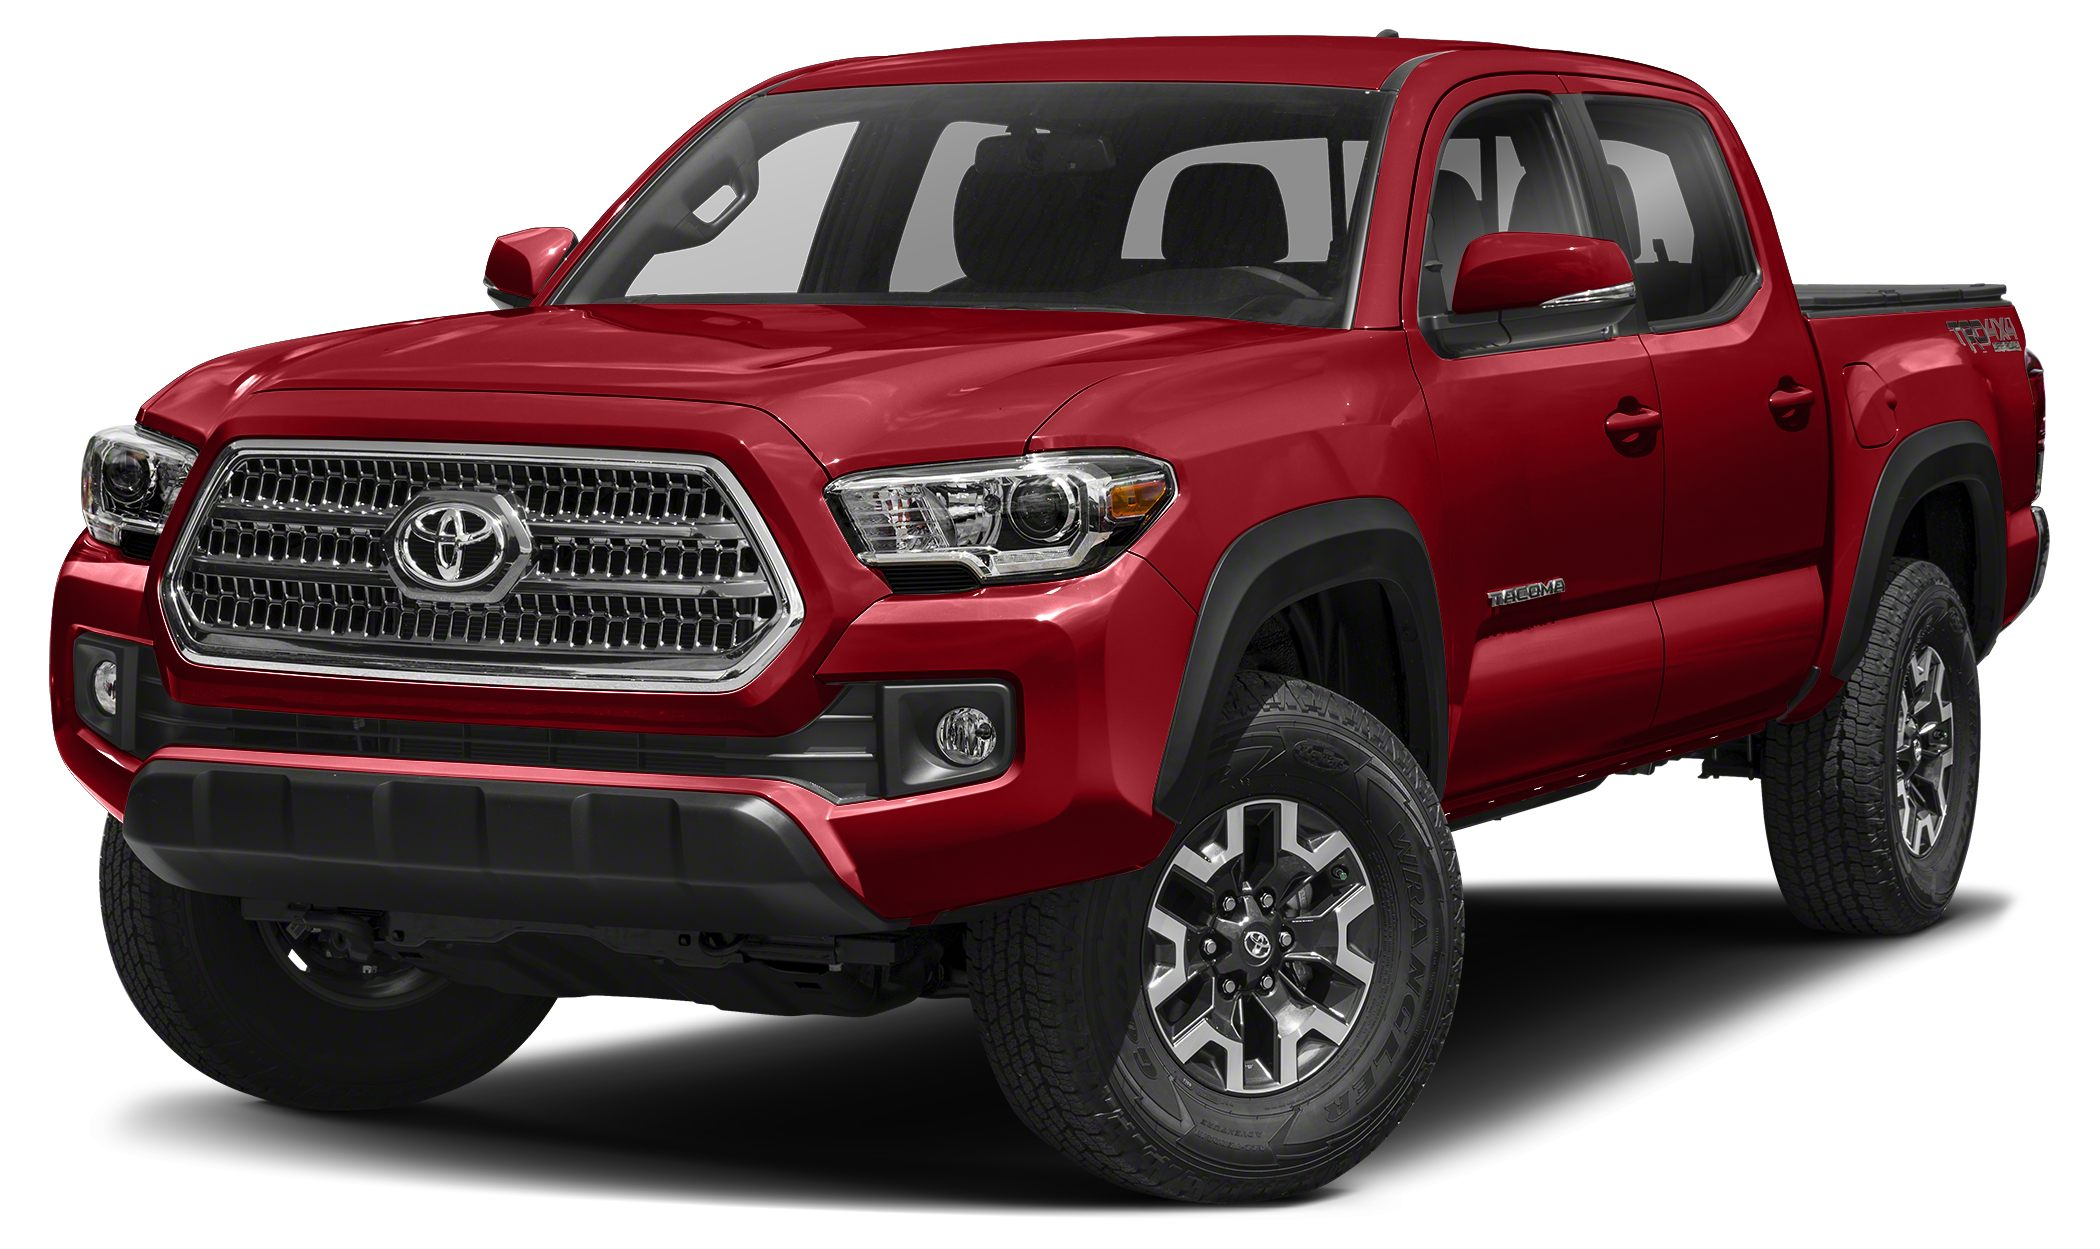 2017 Toyota Tacoma TRD Off Road CARFAX 1-Owner GREAT MILES 12522 EPA 23 MPG Hwy18 MPG City Na